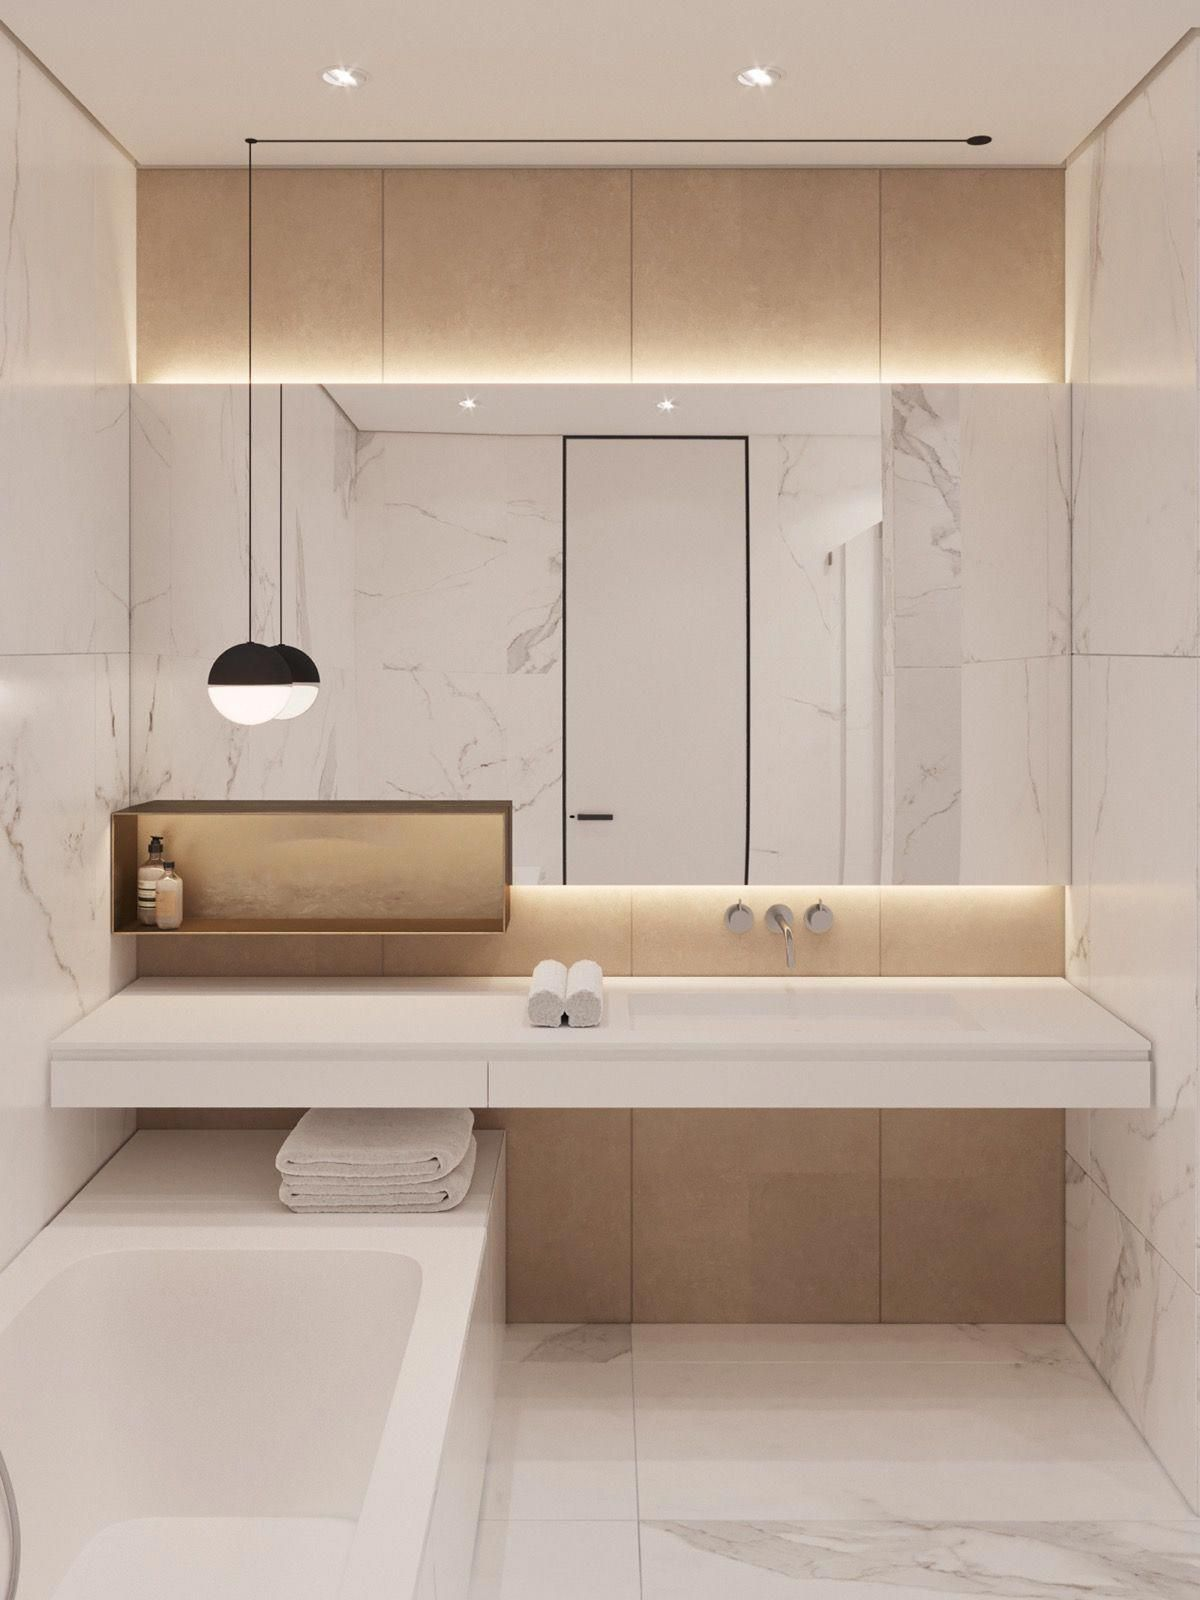 On A Budget Bathroom Remodel Ideas Every Bathroom Remodel Starts With A Layout Concept From Typical Bathroom Design Modern Bathroom Bathroom Interior Design